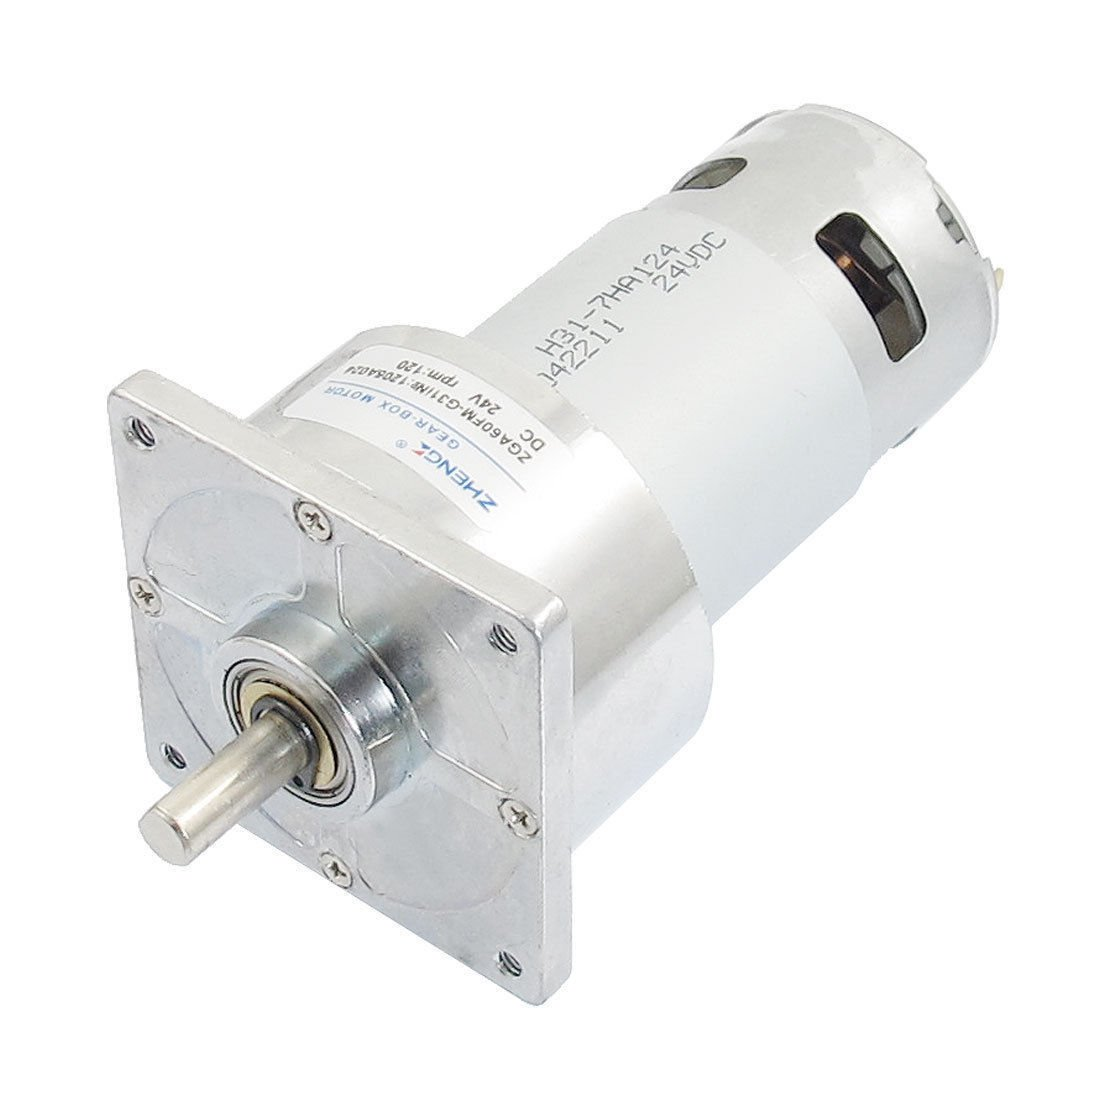 DC 24V 120RPM 8mm Shaft Dia Permanent Magnetic  Geared Motor ZGA60FM-G